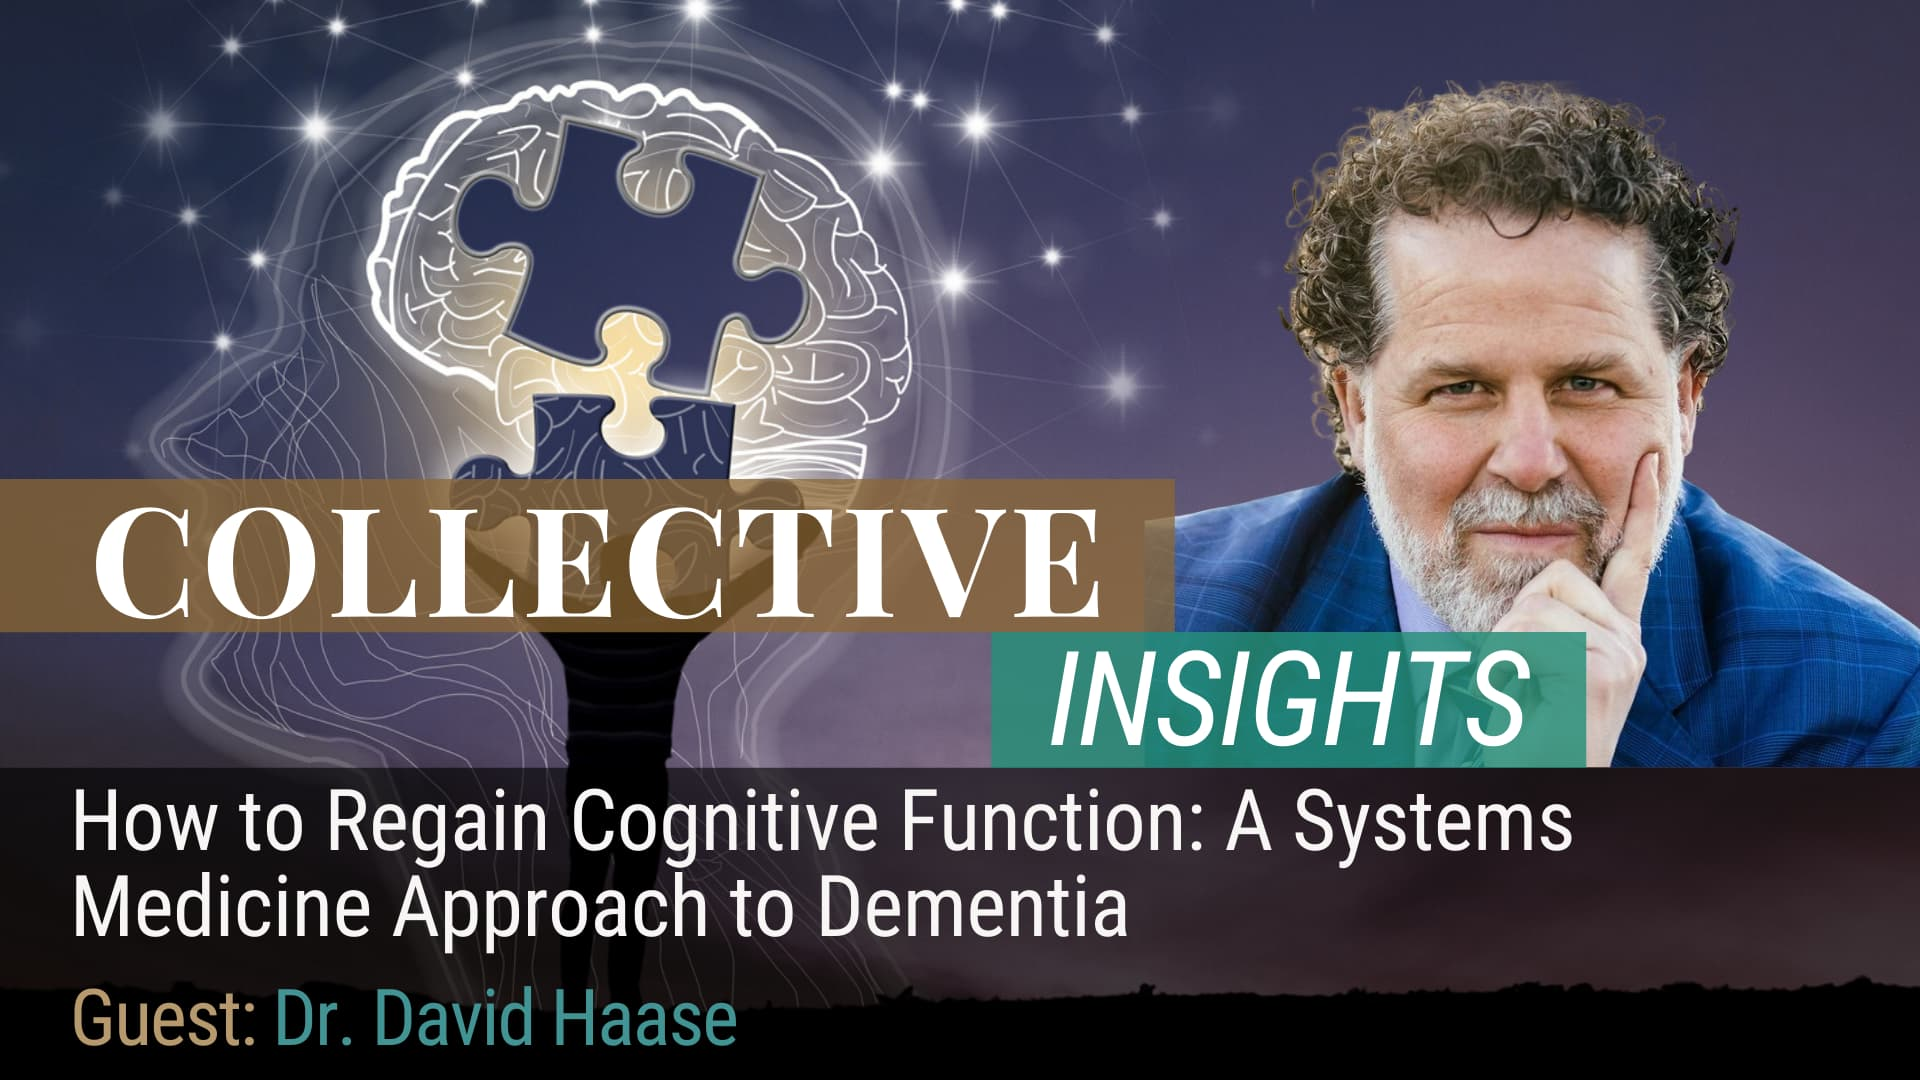 How to Regain Cognitive Function: A Systems Medicine Approach to Dementia